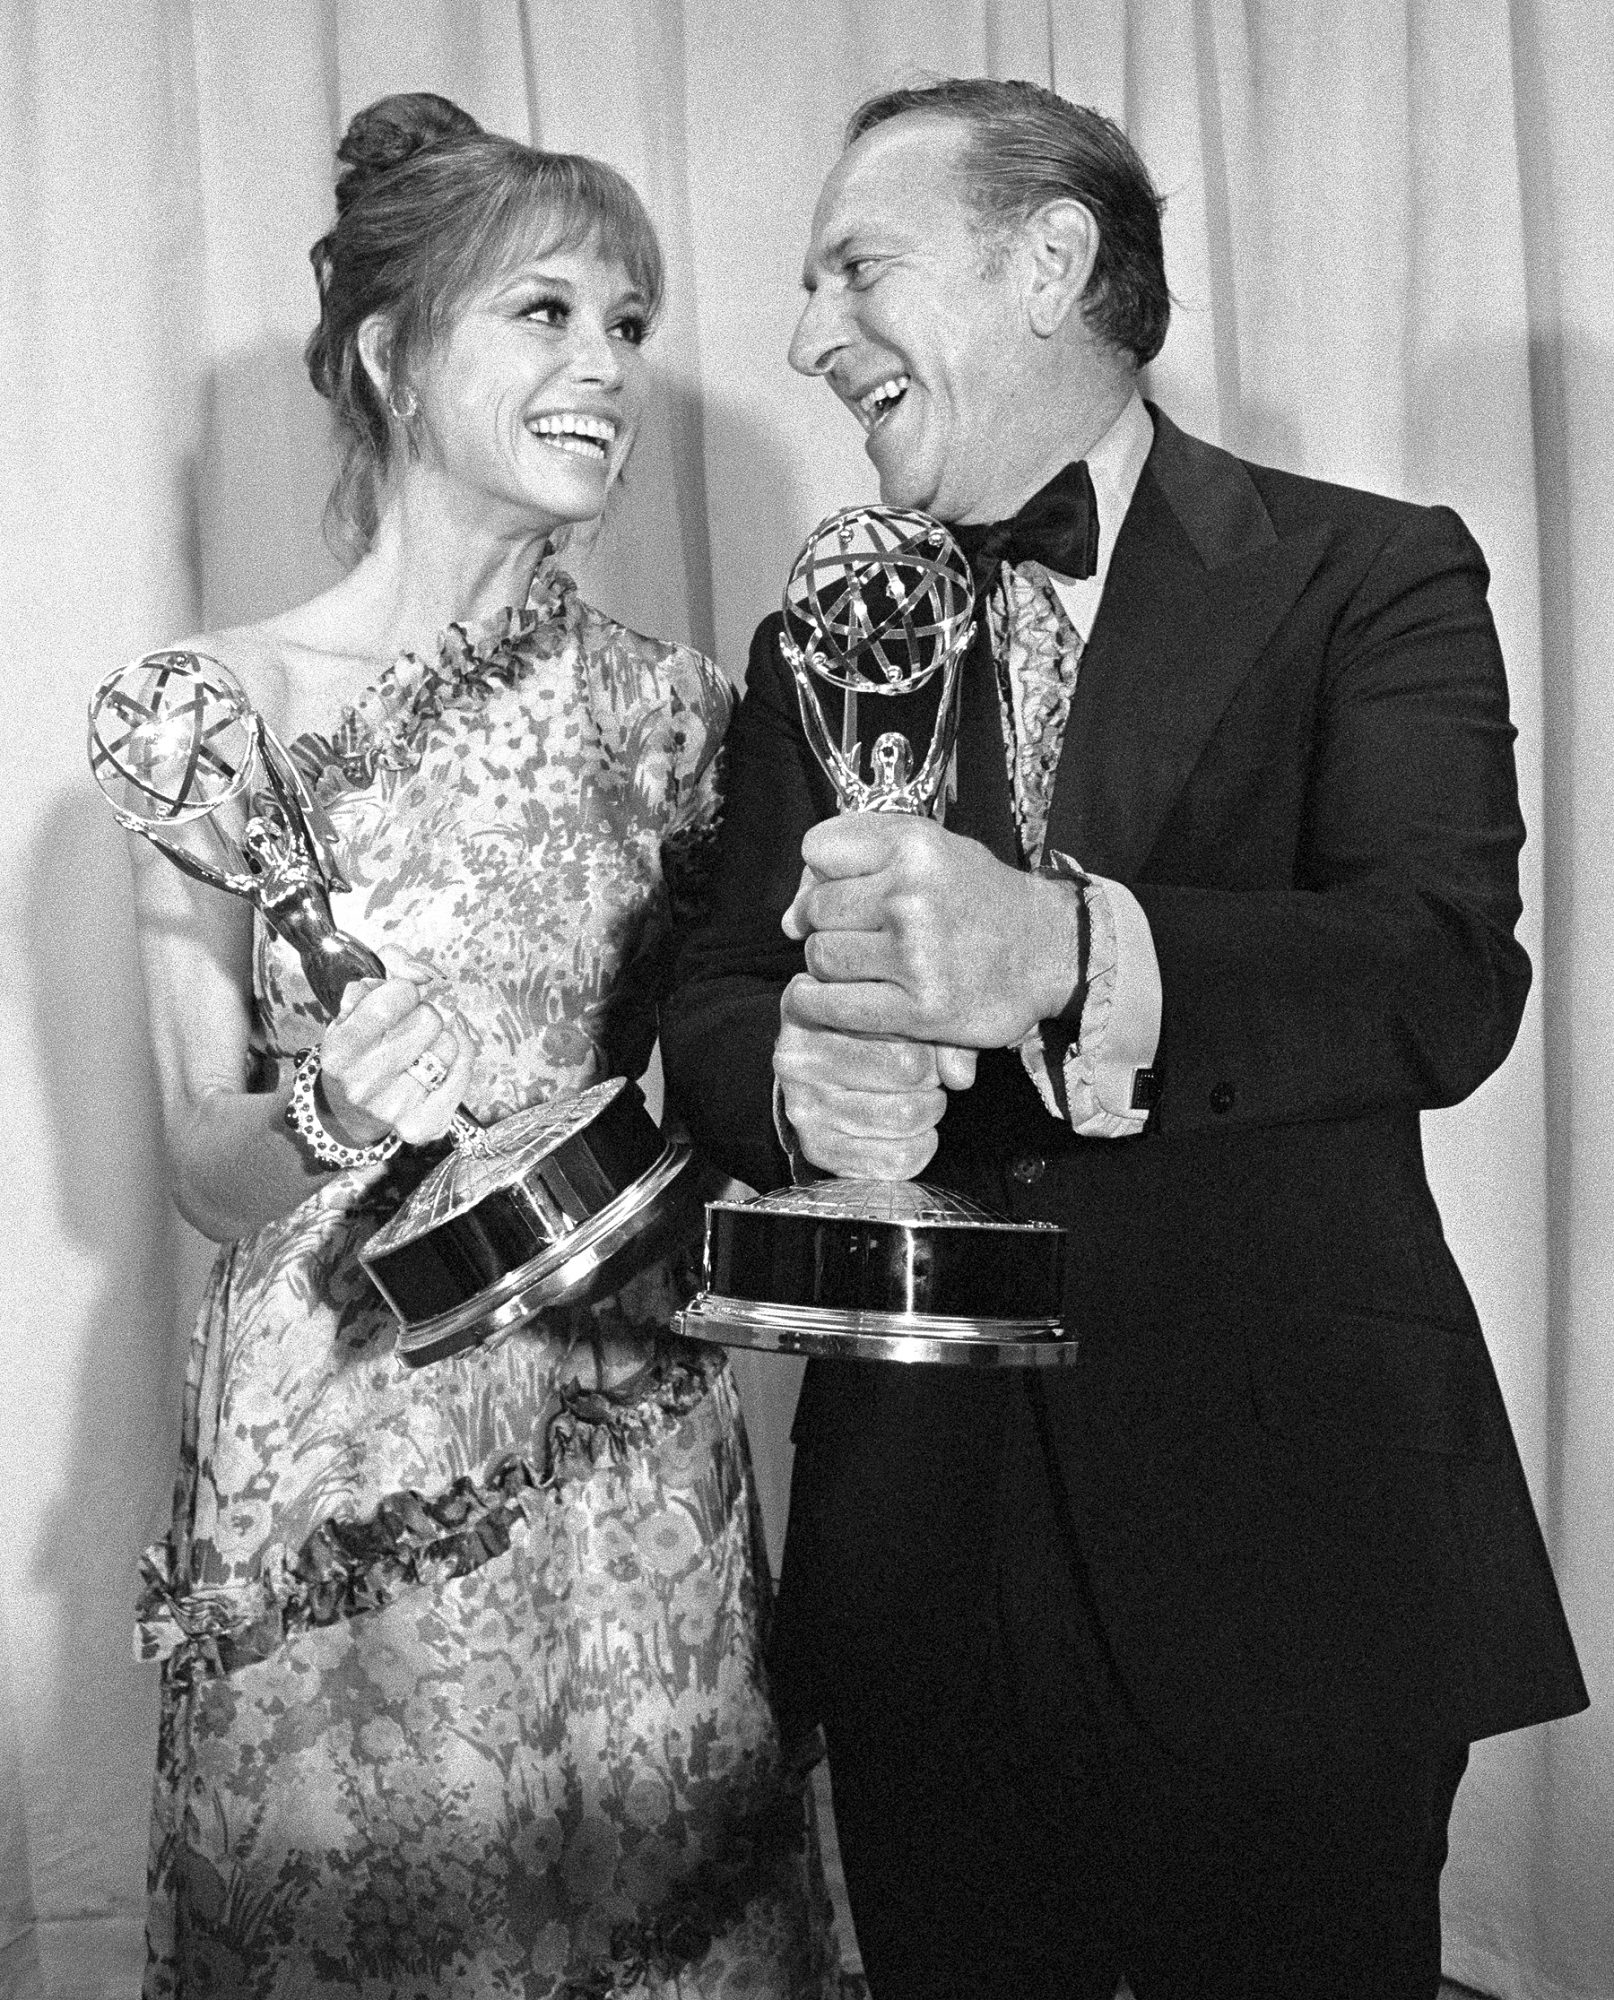 Portrait of Mary Tyler Moore and Jack Klugman